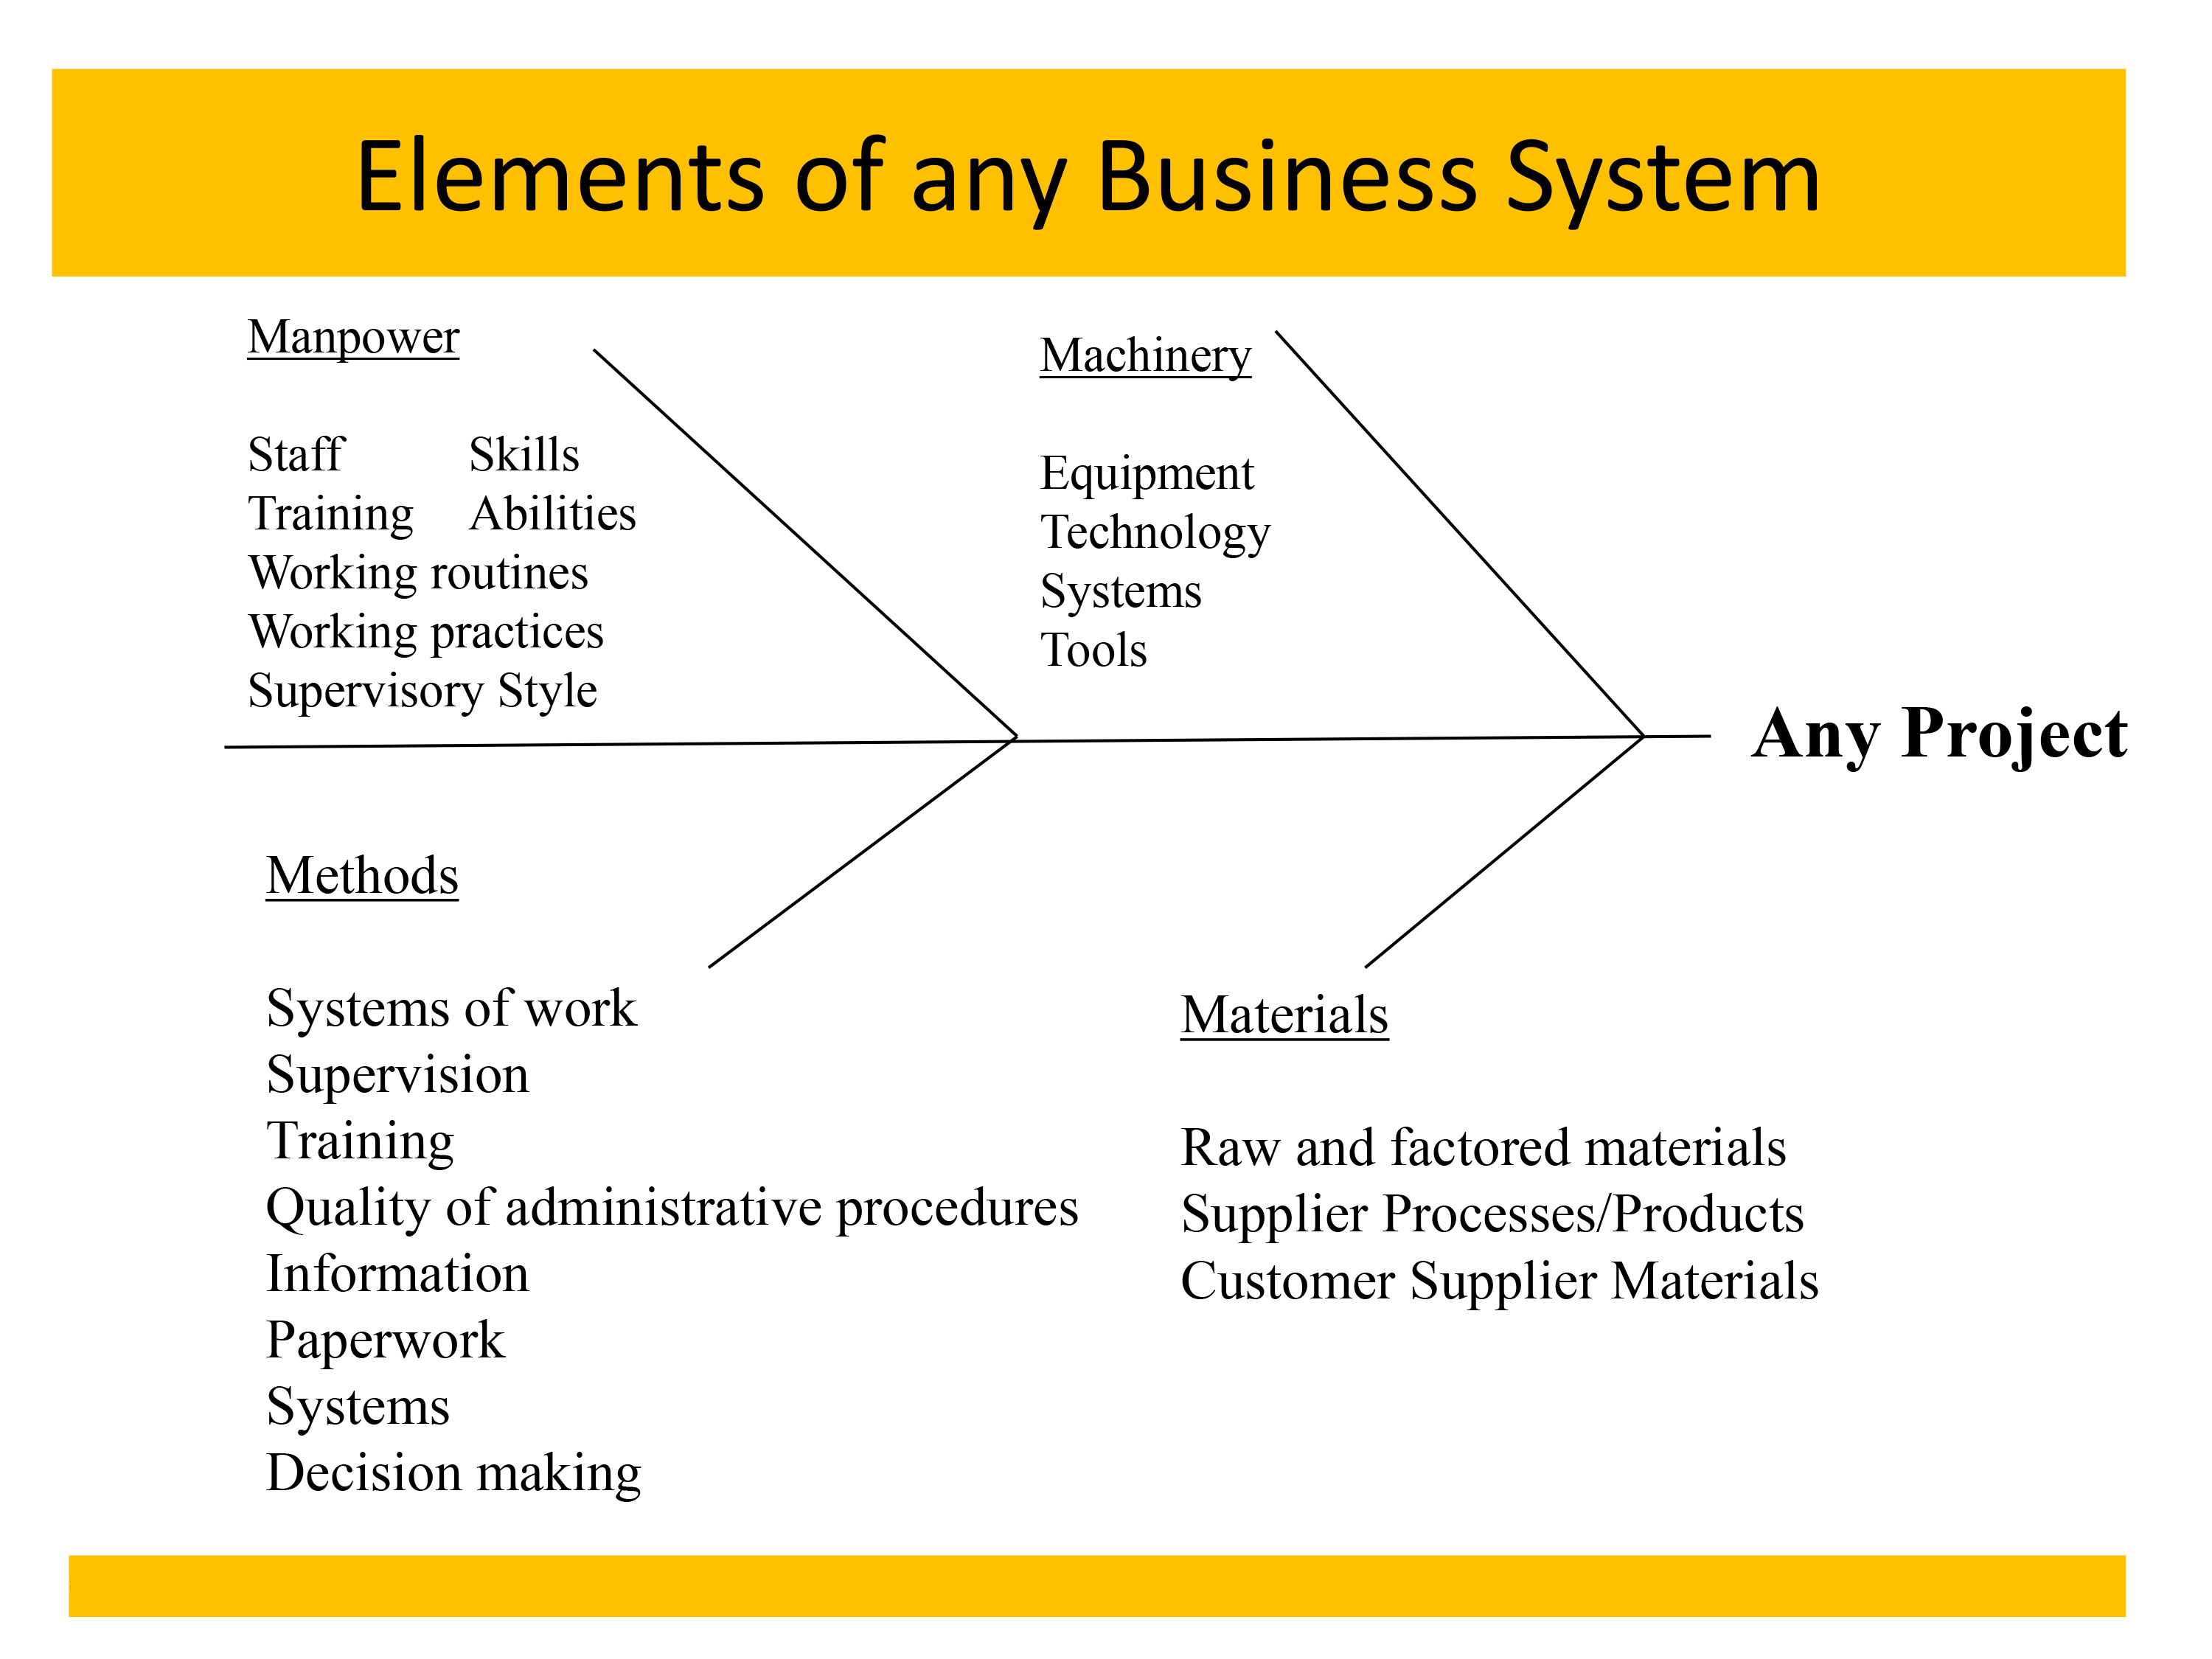 Elements of any Business System